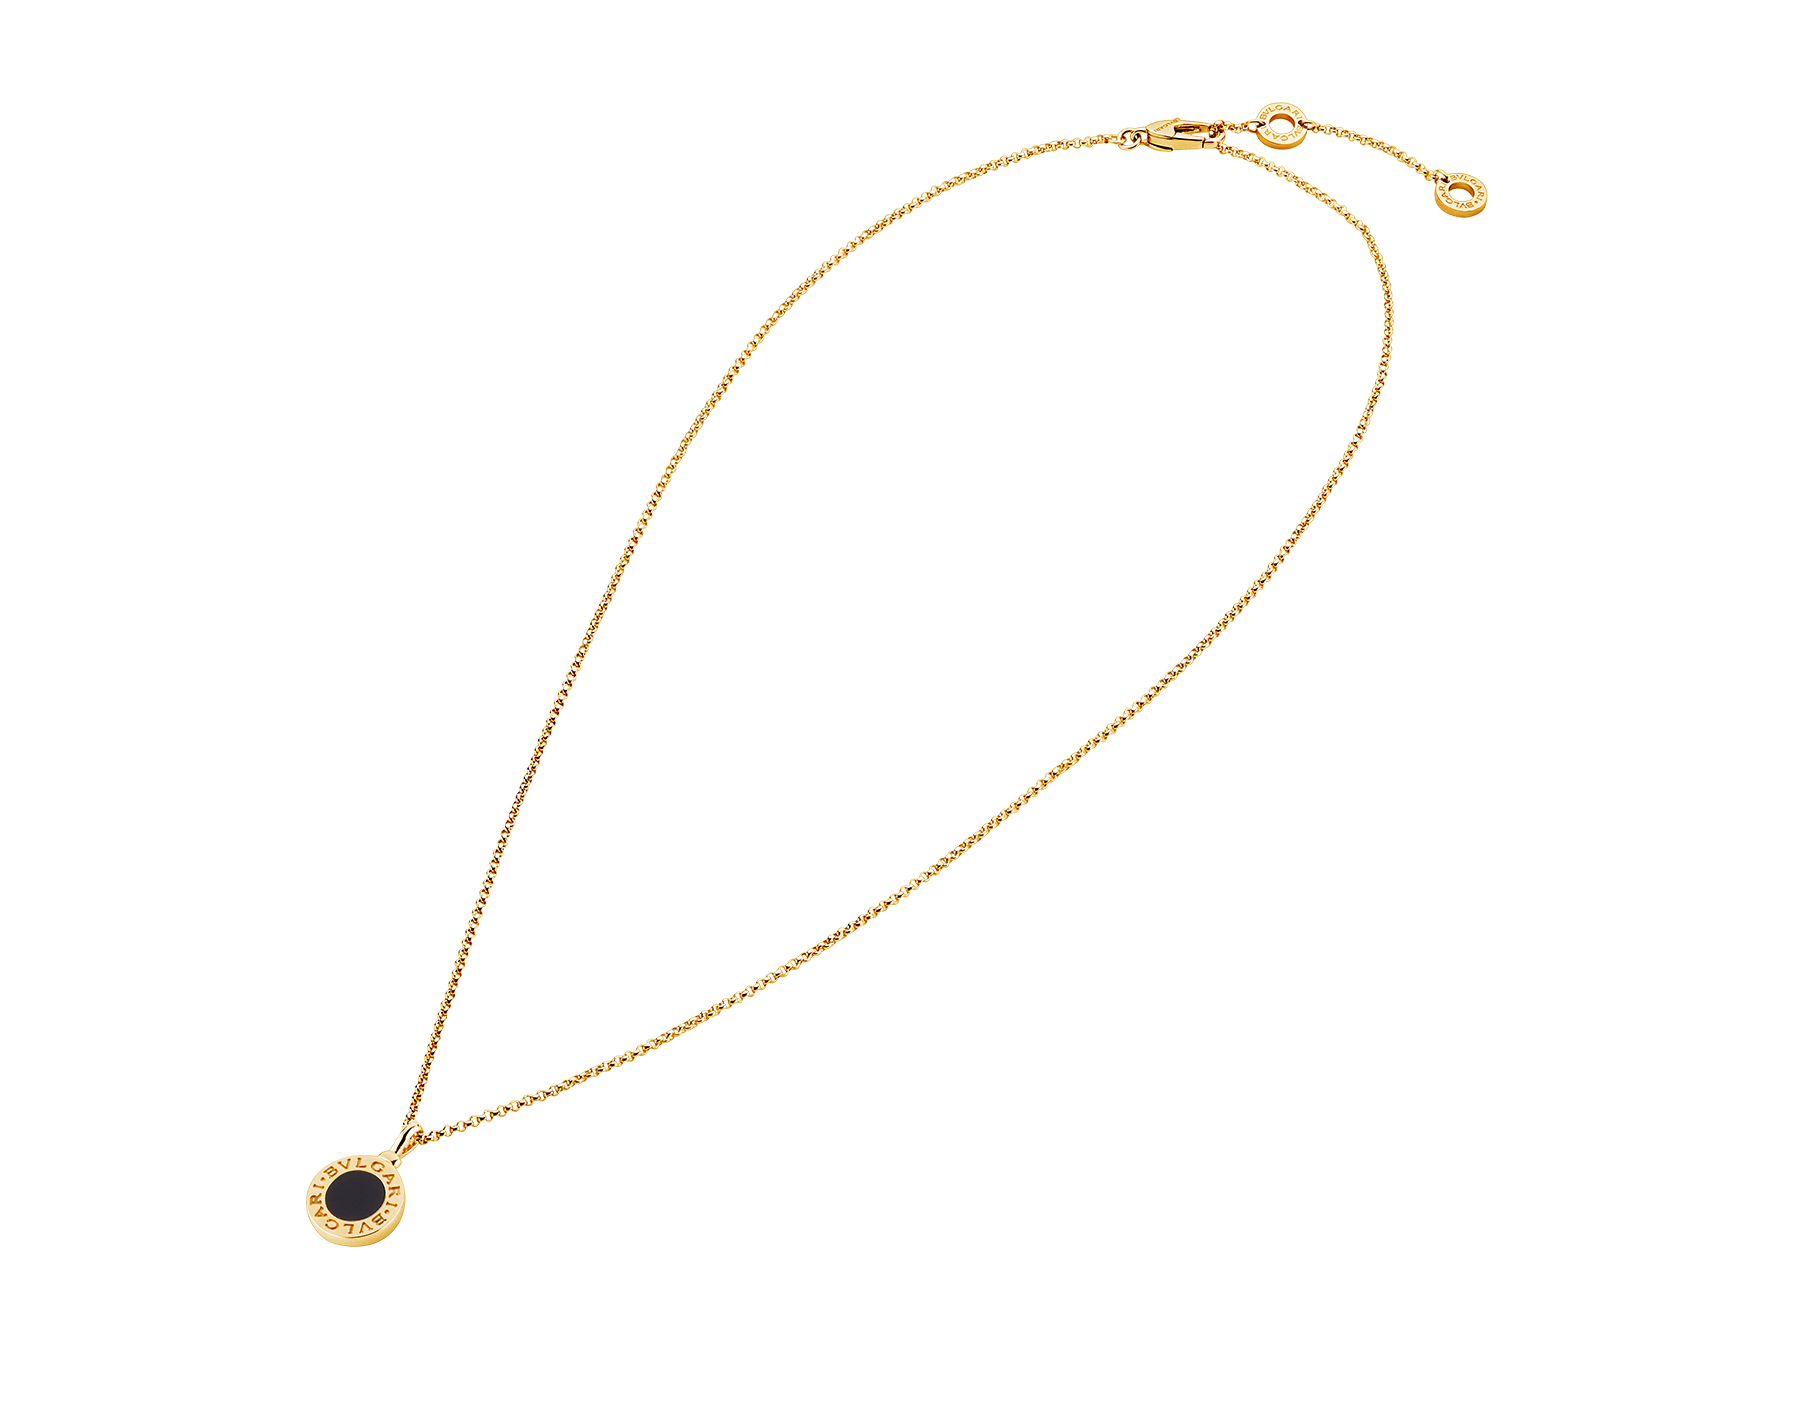 BVLGARI BVLGARI necklace with 18 kt yellow gold chain and 18 kt yellow gold pendant set with onyx 350554 image 2